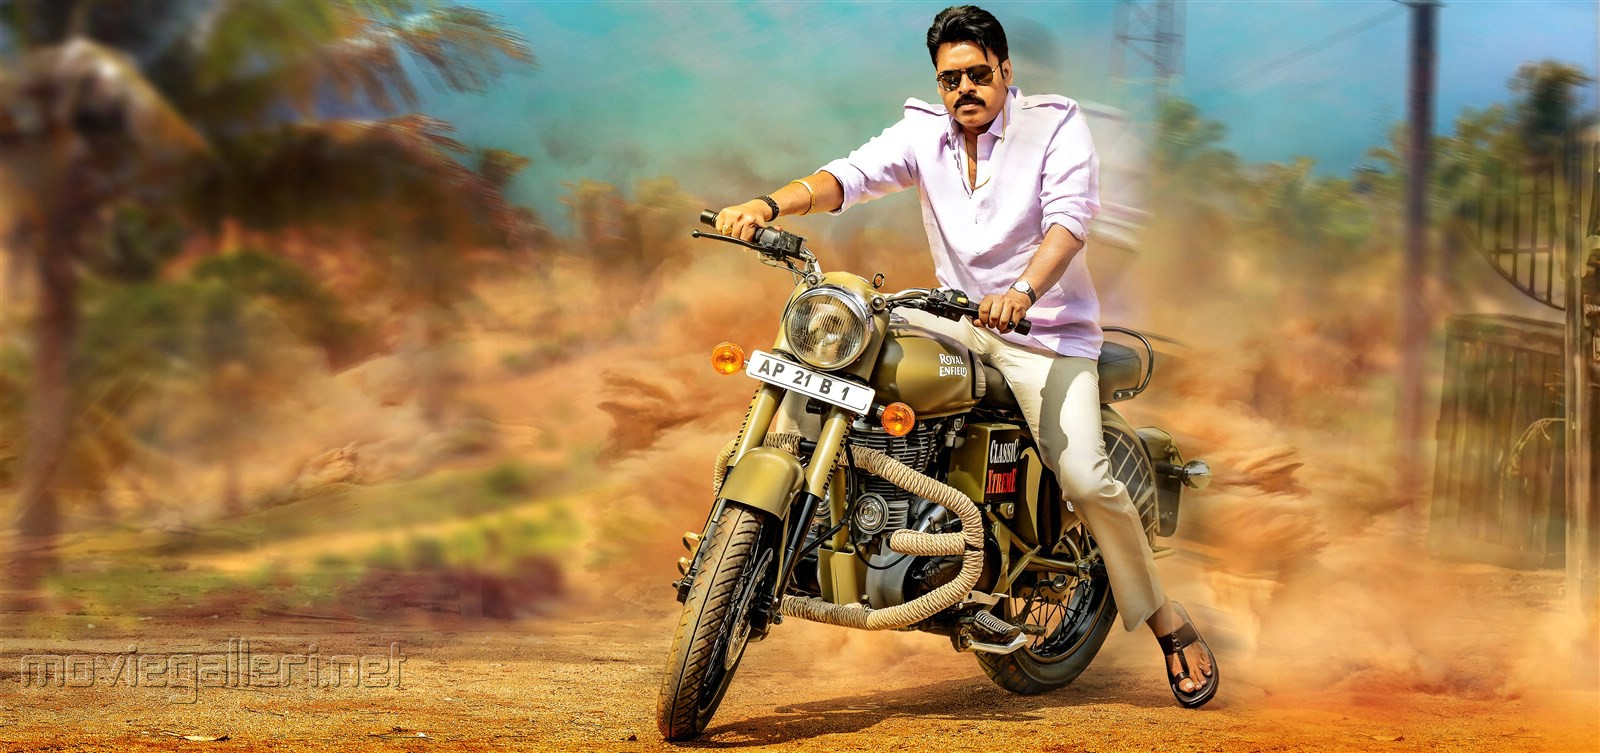 Pawan kalyan hd wallpaper